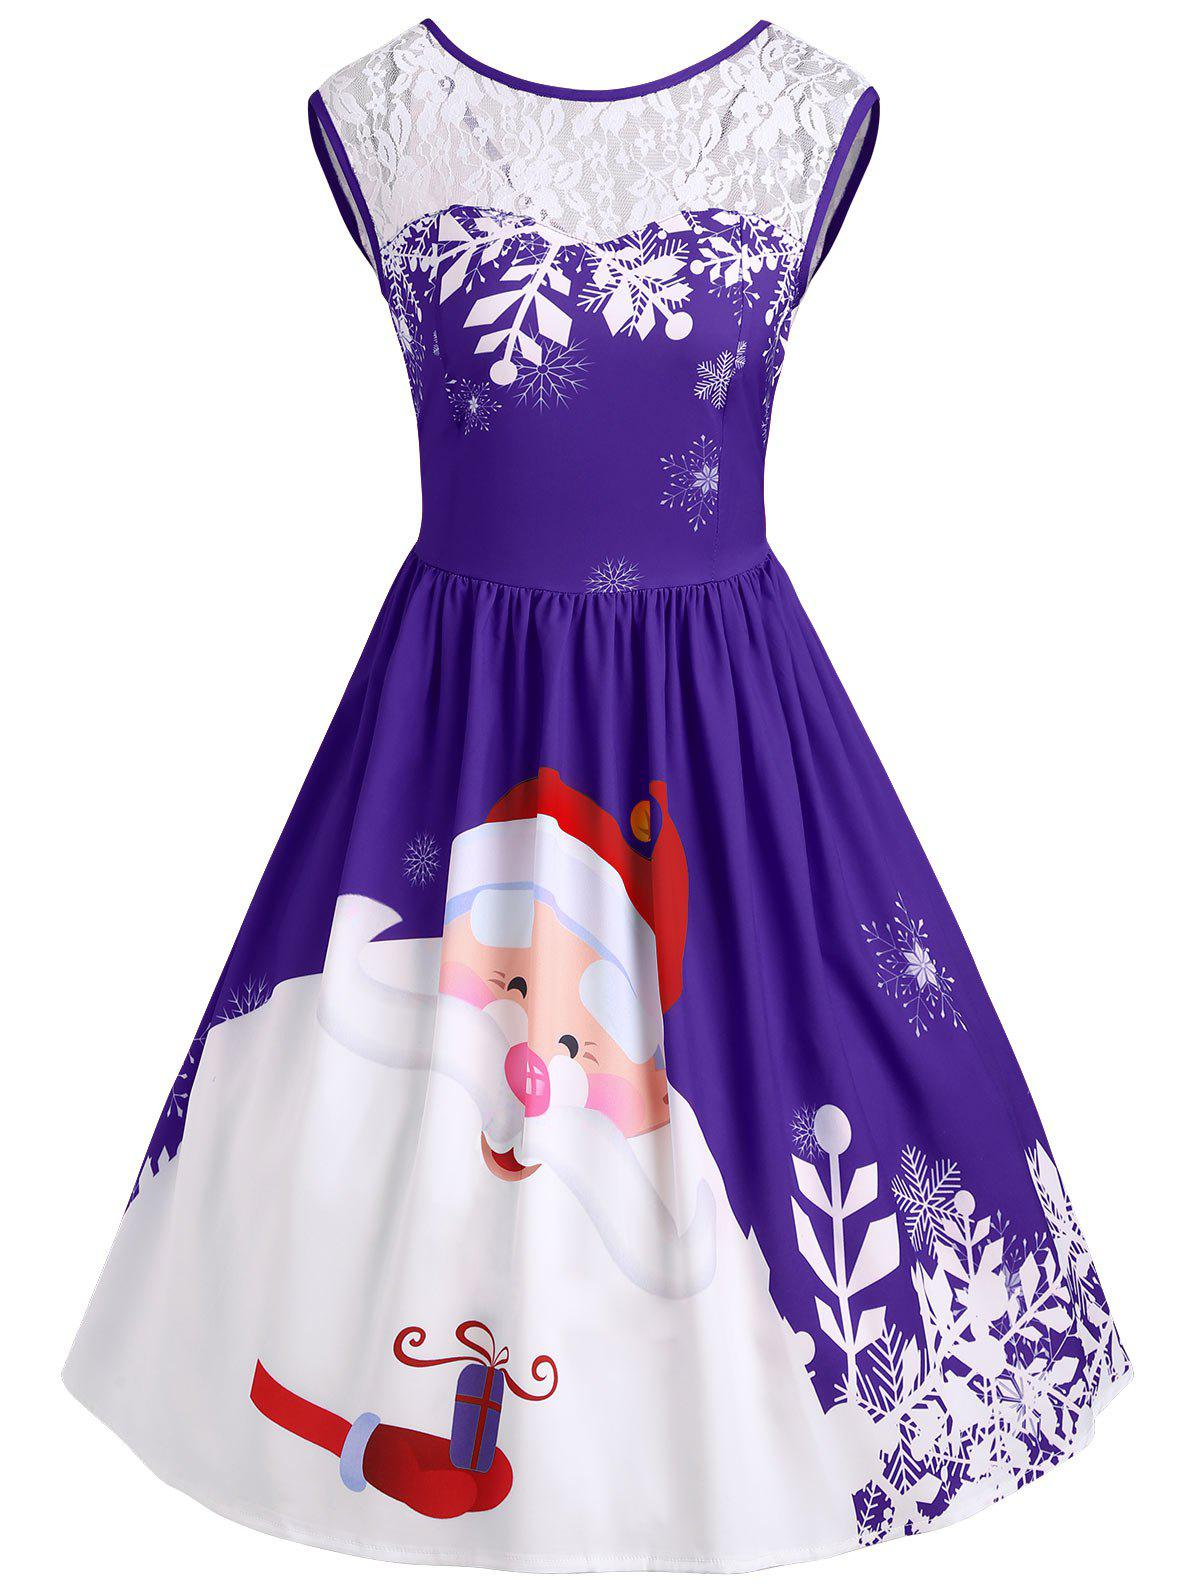 Christmas Santa Claus Print Lace Insert Party DressWOMEN<br><br>Size: 2XL; Color: PURPLE; Style: Vintage; Material: Polyester,Spandex; Silhouette: A-Line; Dresses Length: Knee-Length; Neckline: Round Collar; Sleeve Length: Sleeveless; Pattern Type: Patchwork,Print; With Belt: No; Season: Fall,Spring; Weight: 0.3500kg; Package Contents: 1 x Dress;